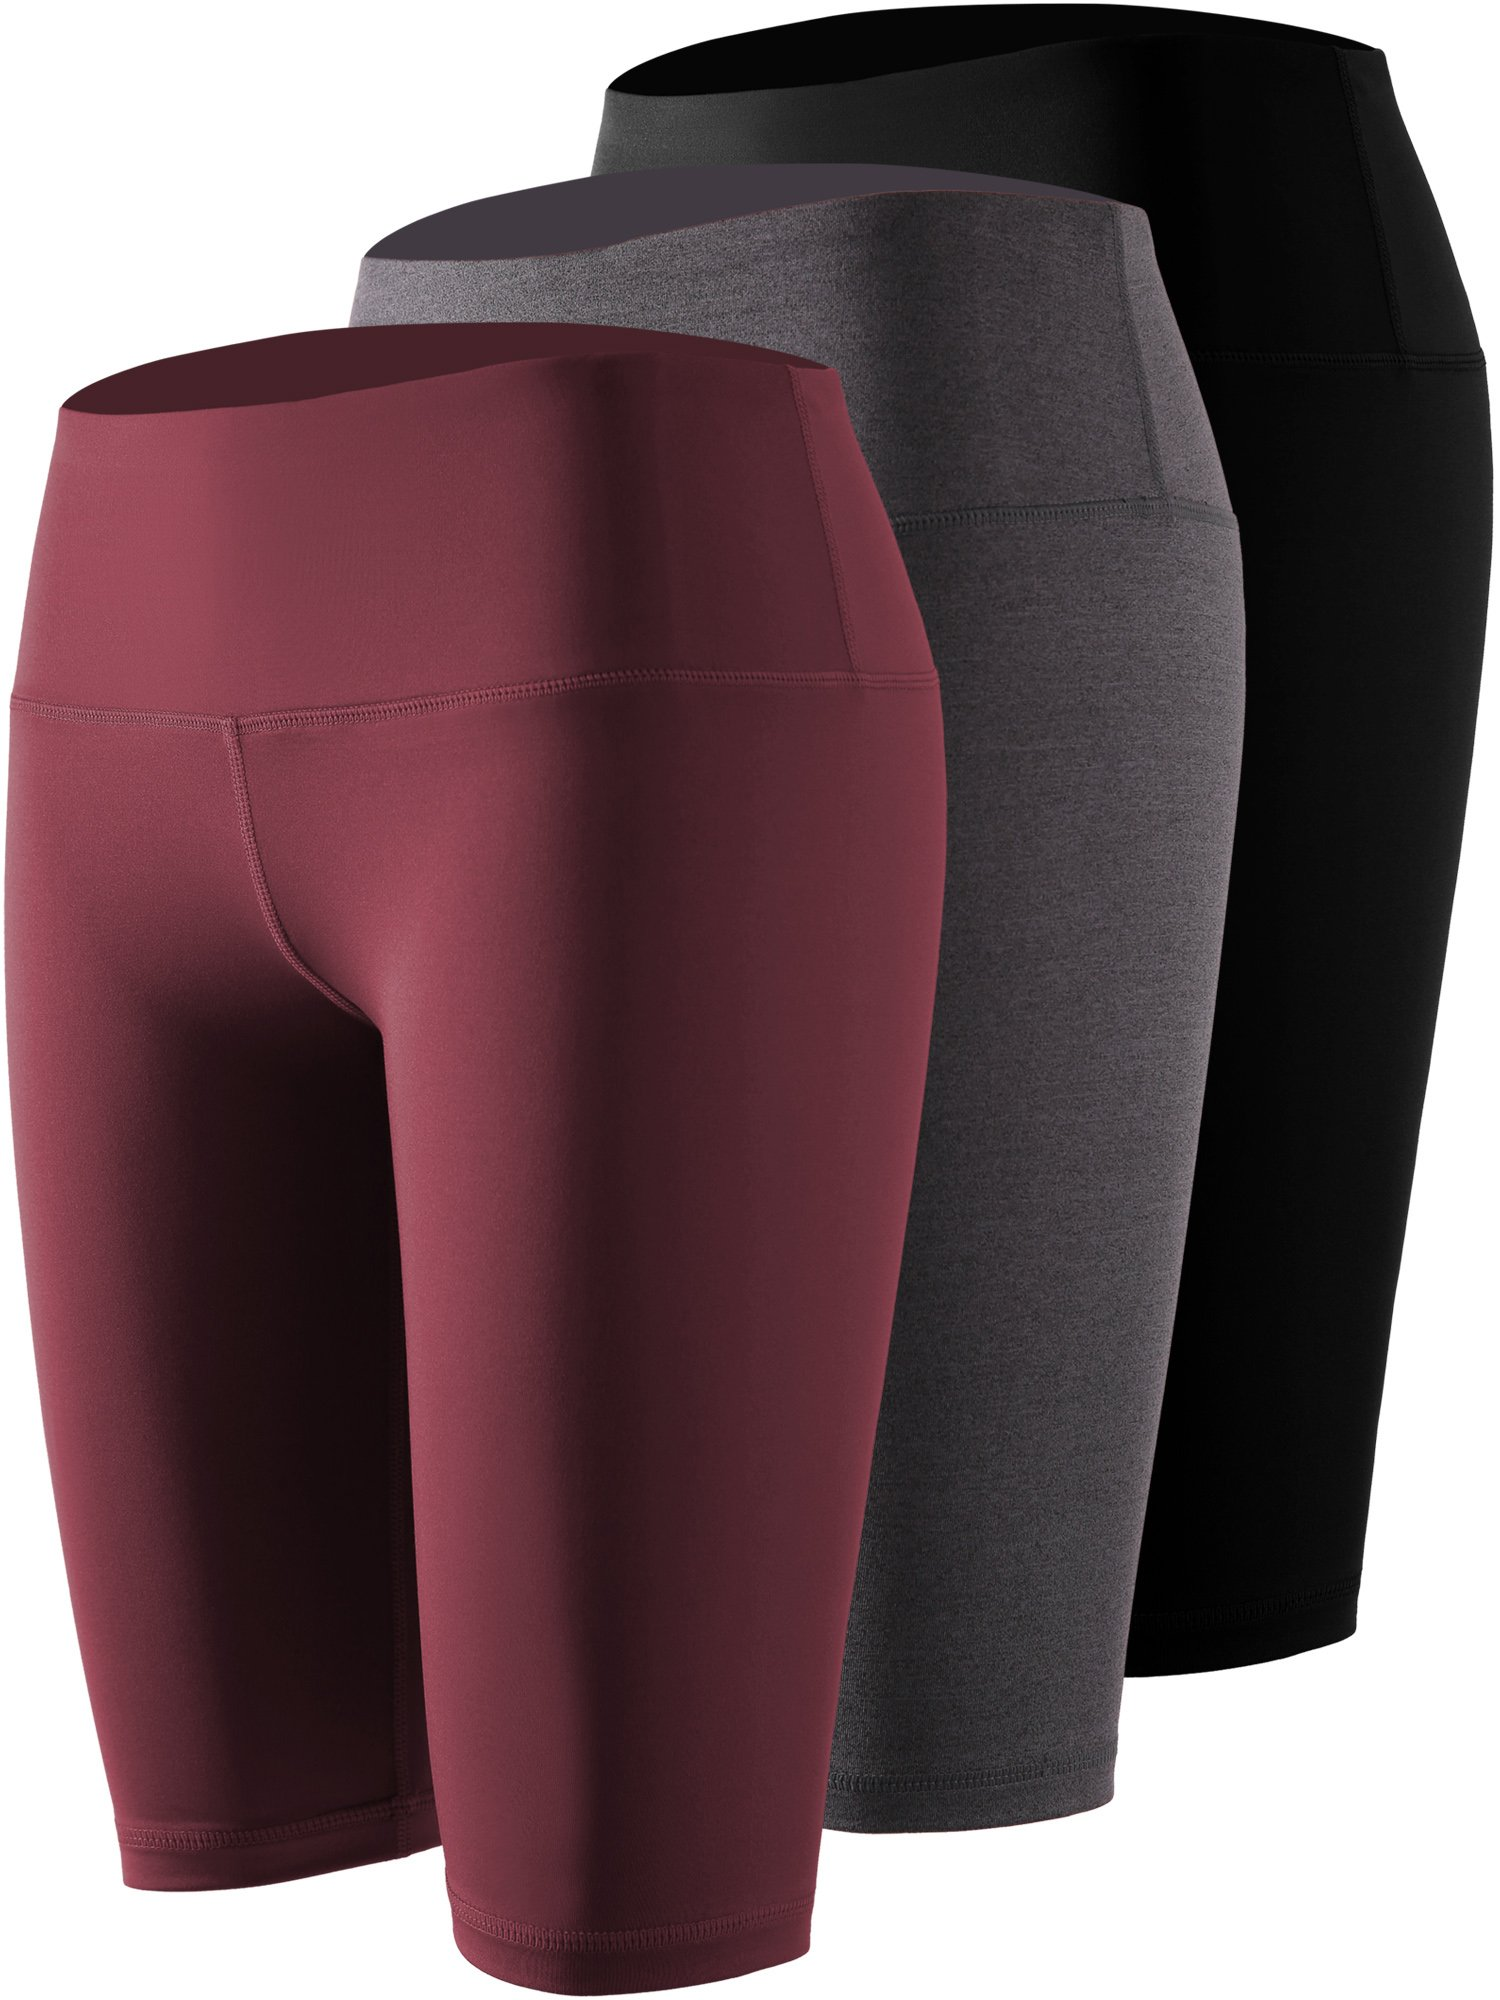 Cadmus Women's 3 Pack Compression Athletic Workout Shorts with Pocket,04,Black,Grey,Wine Red,X-Large by Cadmus